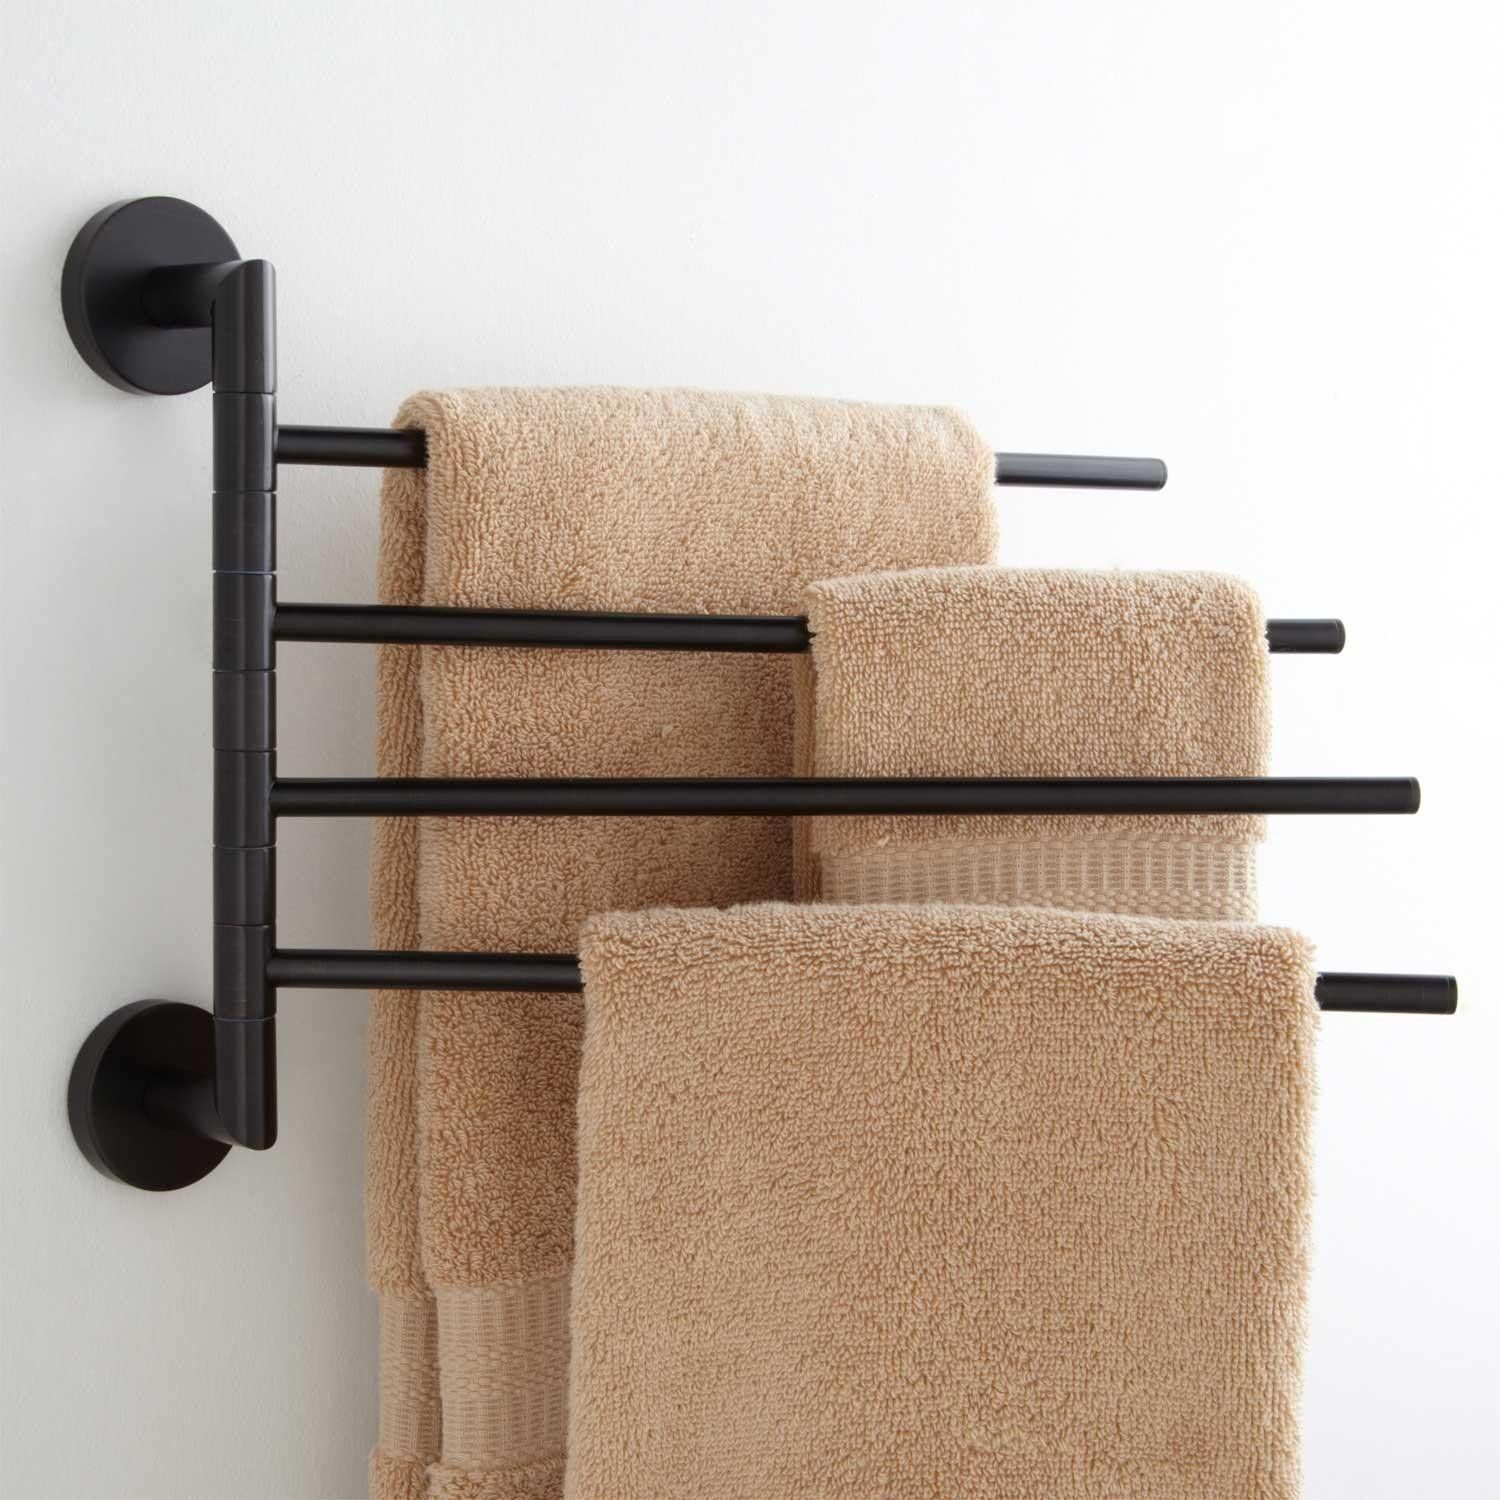 Best Of 3 Arm towel Bar